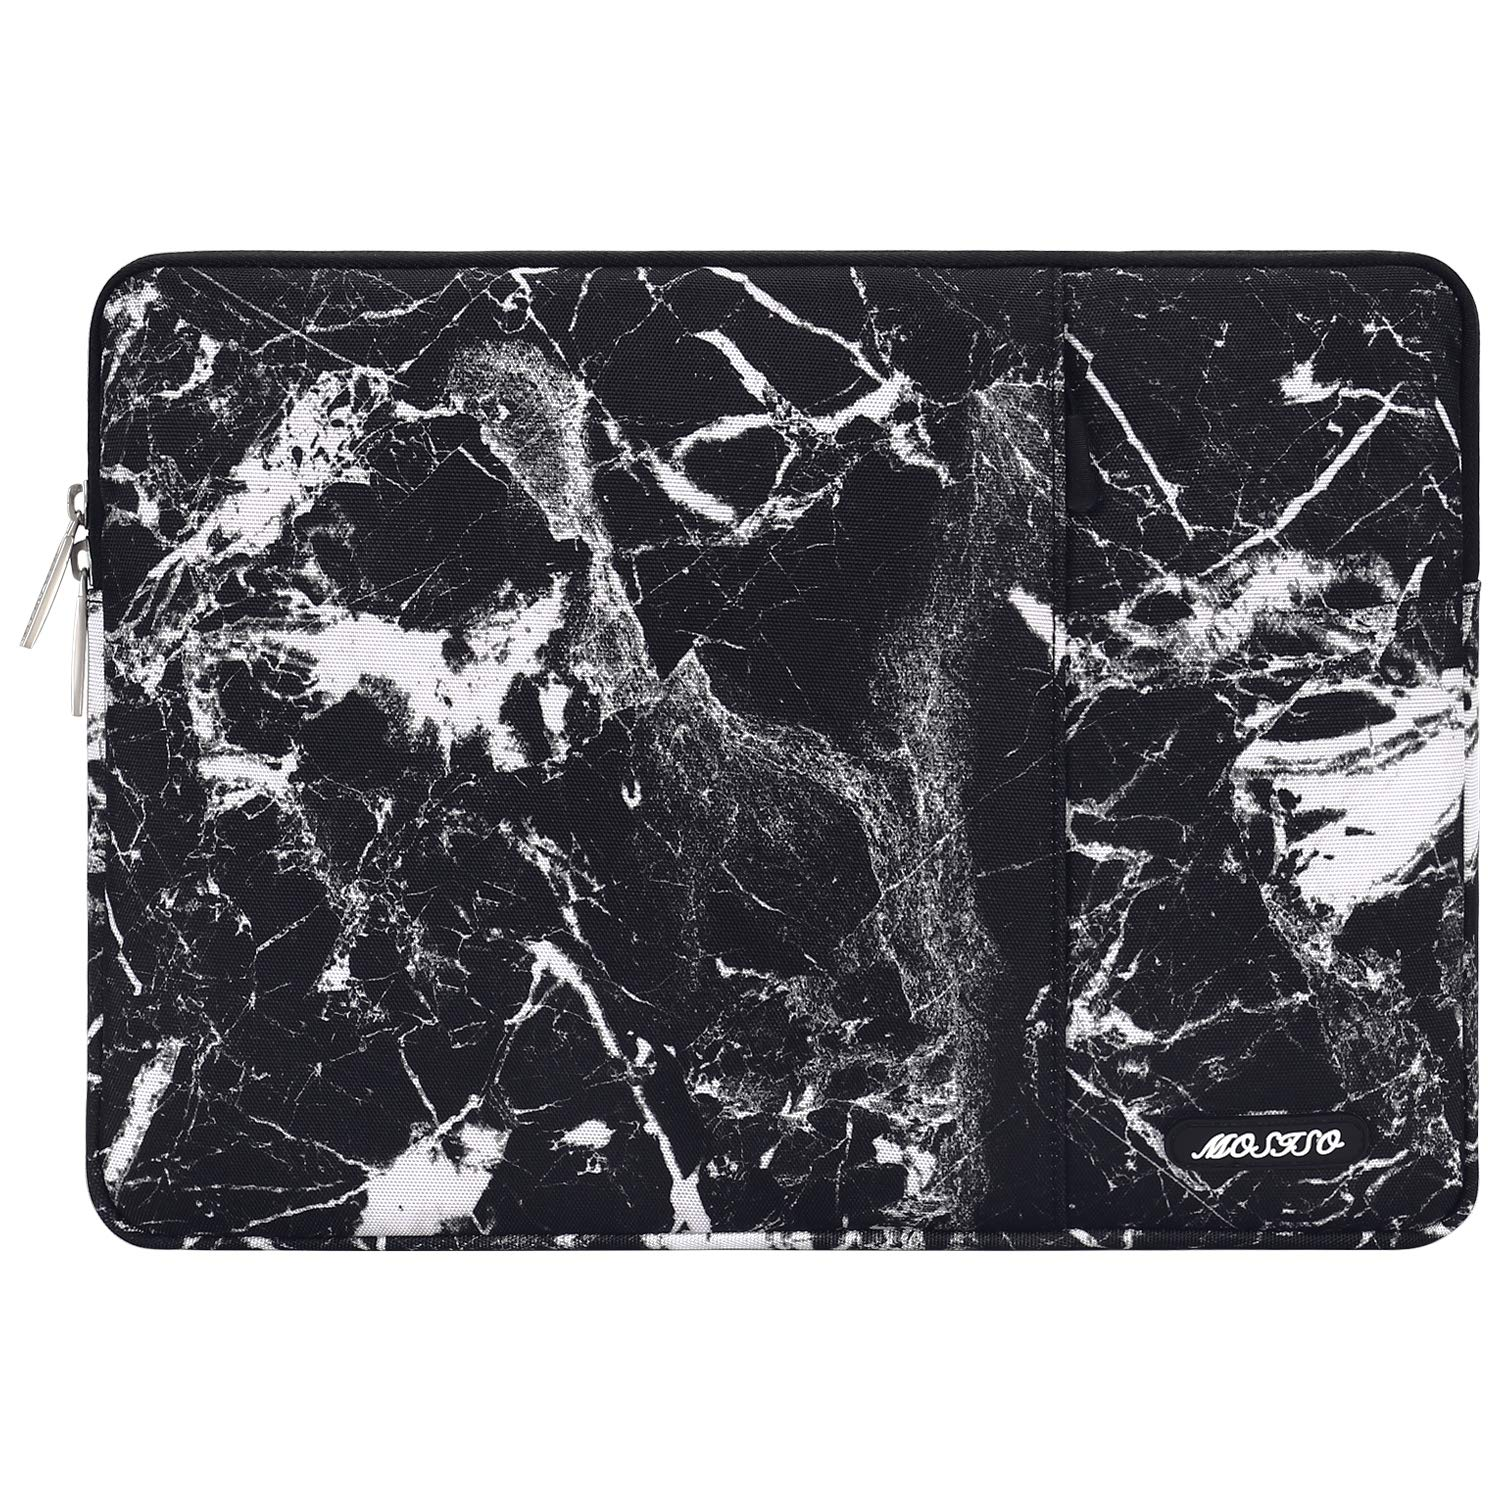 MOSISO Laptop Sleeve Bag Compatible 13-13.3 Inch MacBook Pro, MacBook Air, Notebook Computer, Vertical Style Water Repellent Polyester Protective Case Cover with Pocket, Black Marble by MOSISO (Image #1)